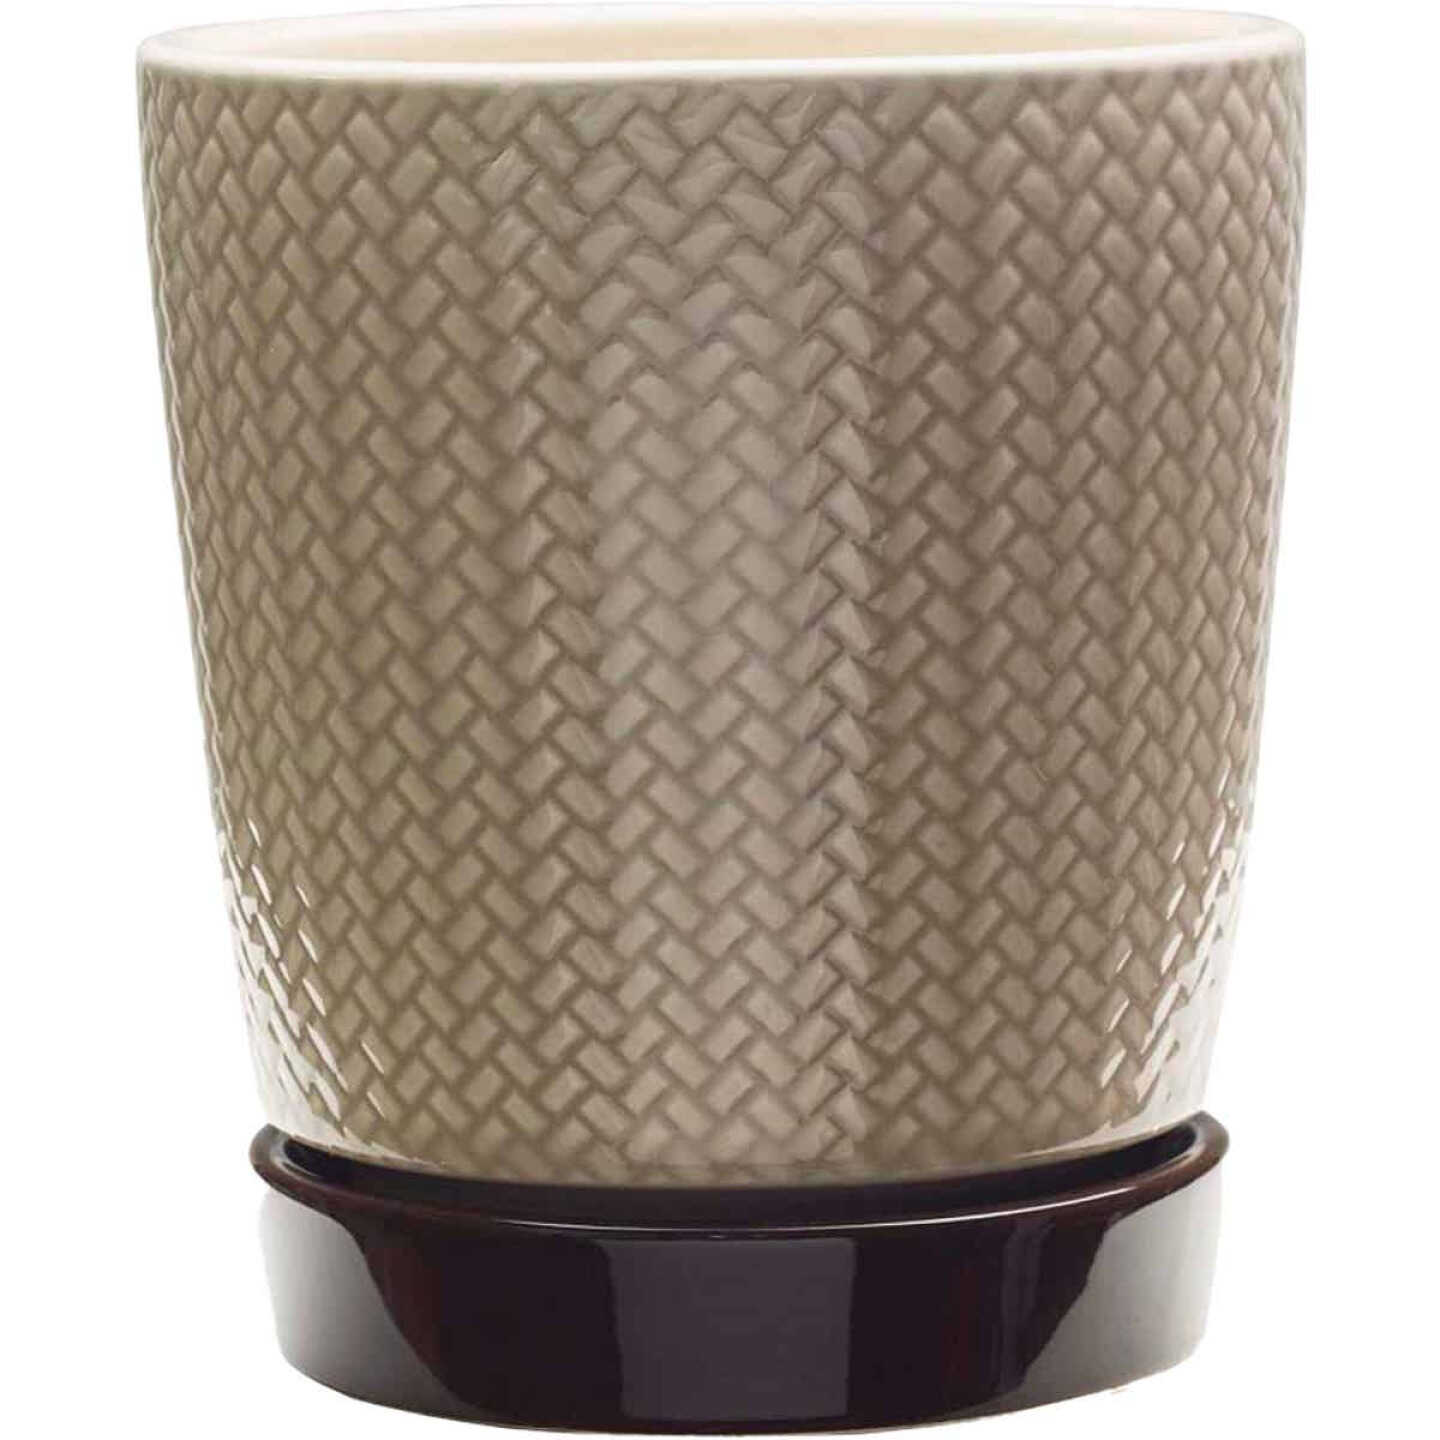 Southern Patio Alice 8-1/2 In. Ceramic Clayworks Light Brown Planter Image 1